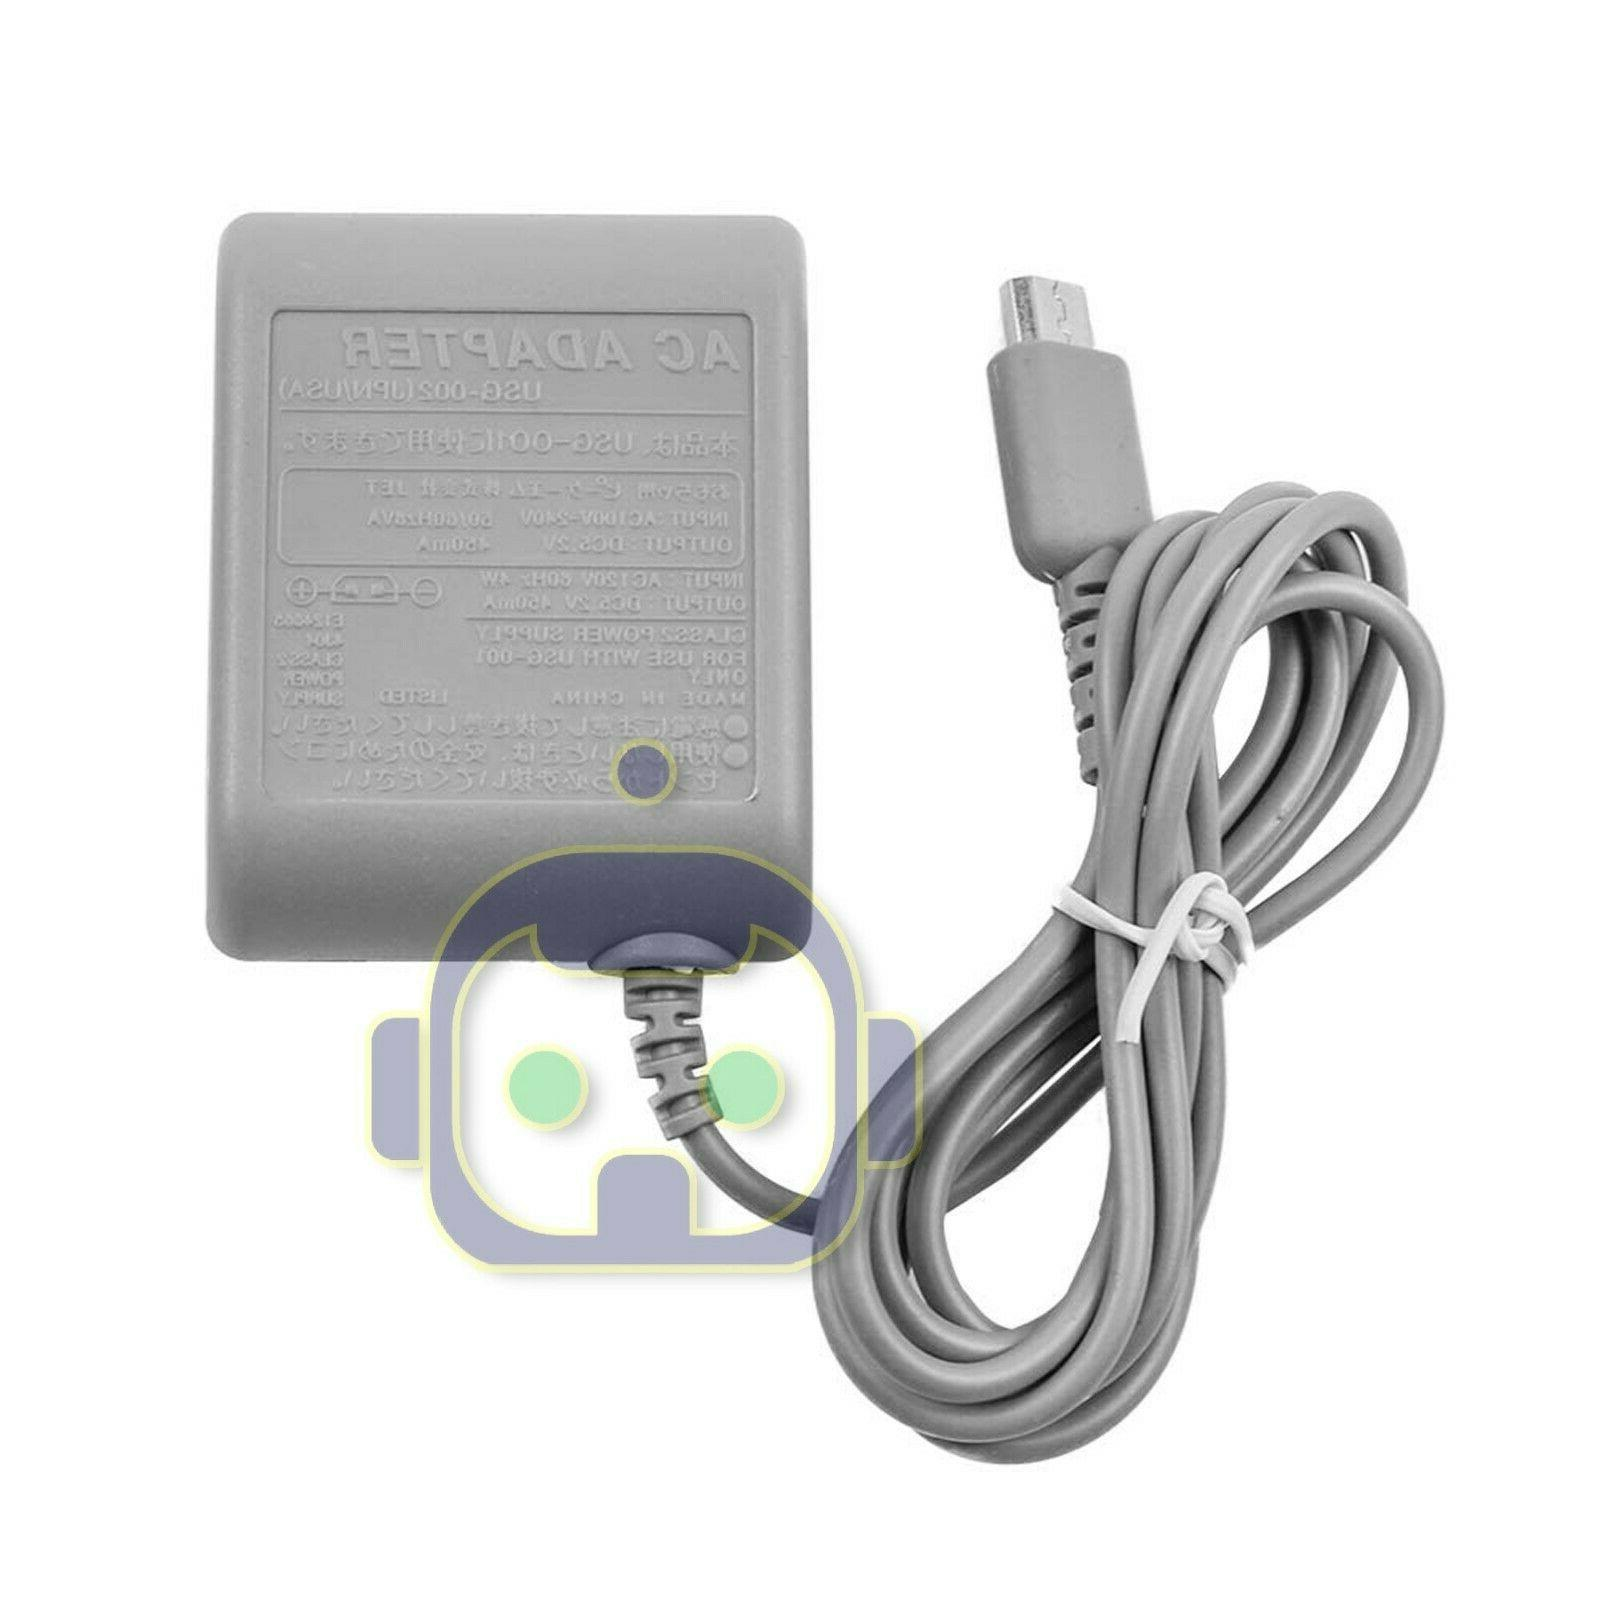 AC Adapter Home Wall Charger Cable Nintendo Ds Lite/ DSL/ NDS lite/